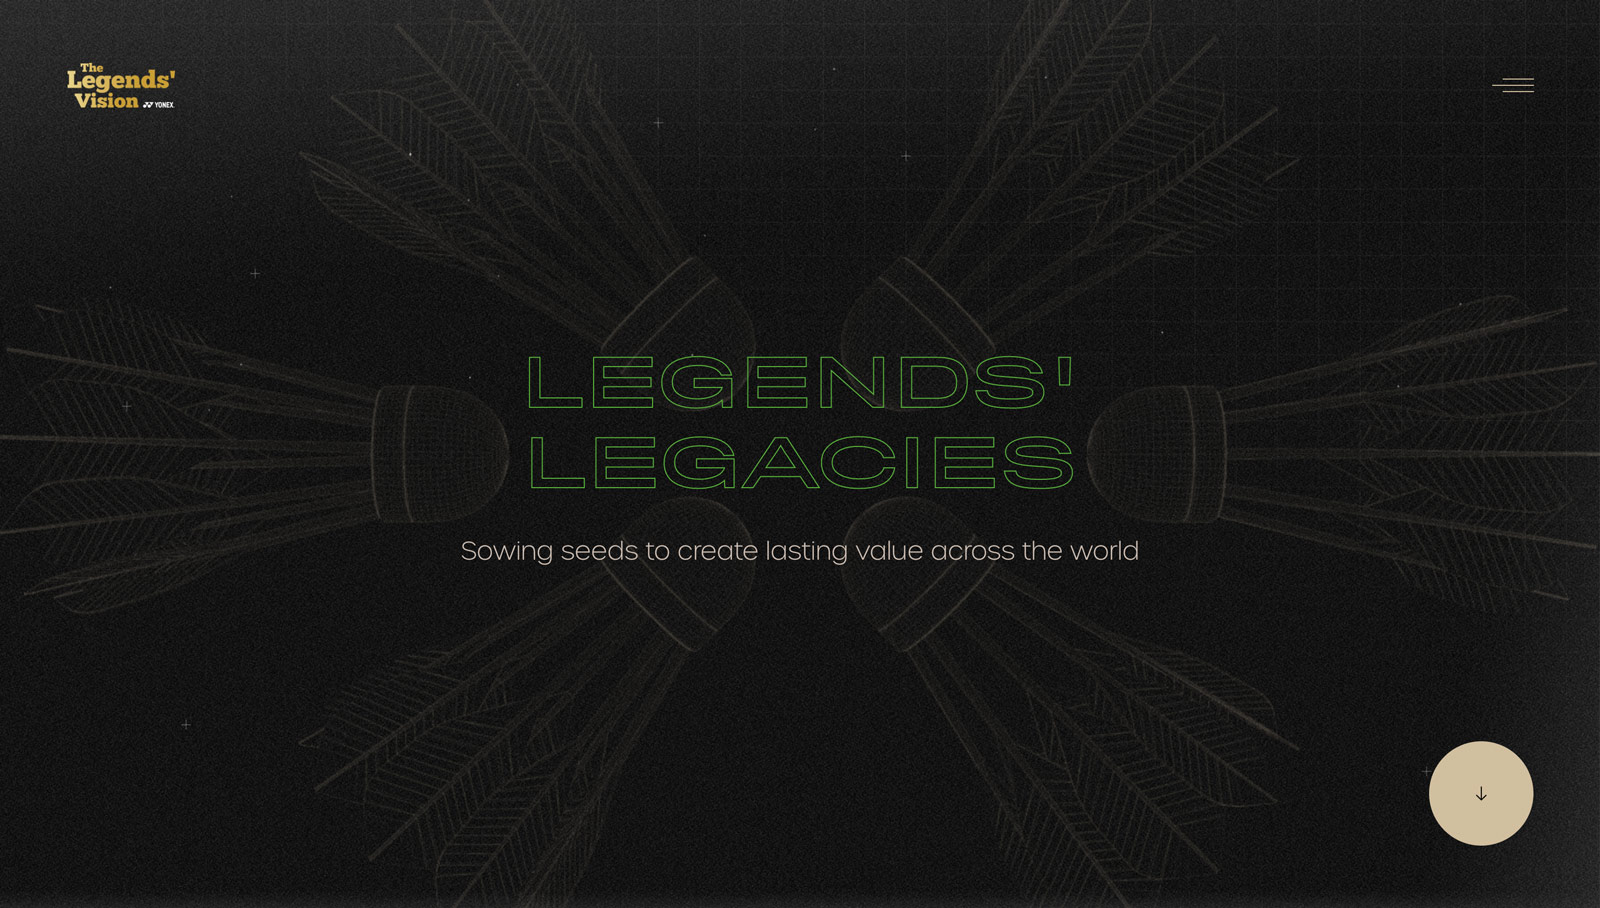 Legends-vision-16